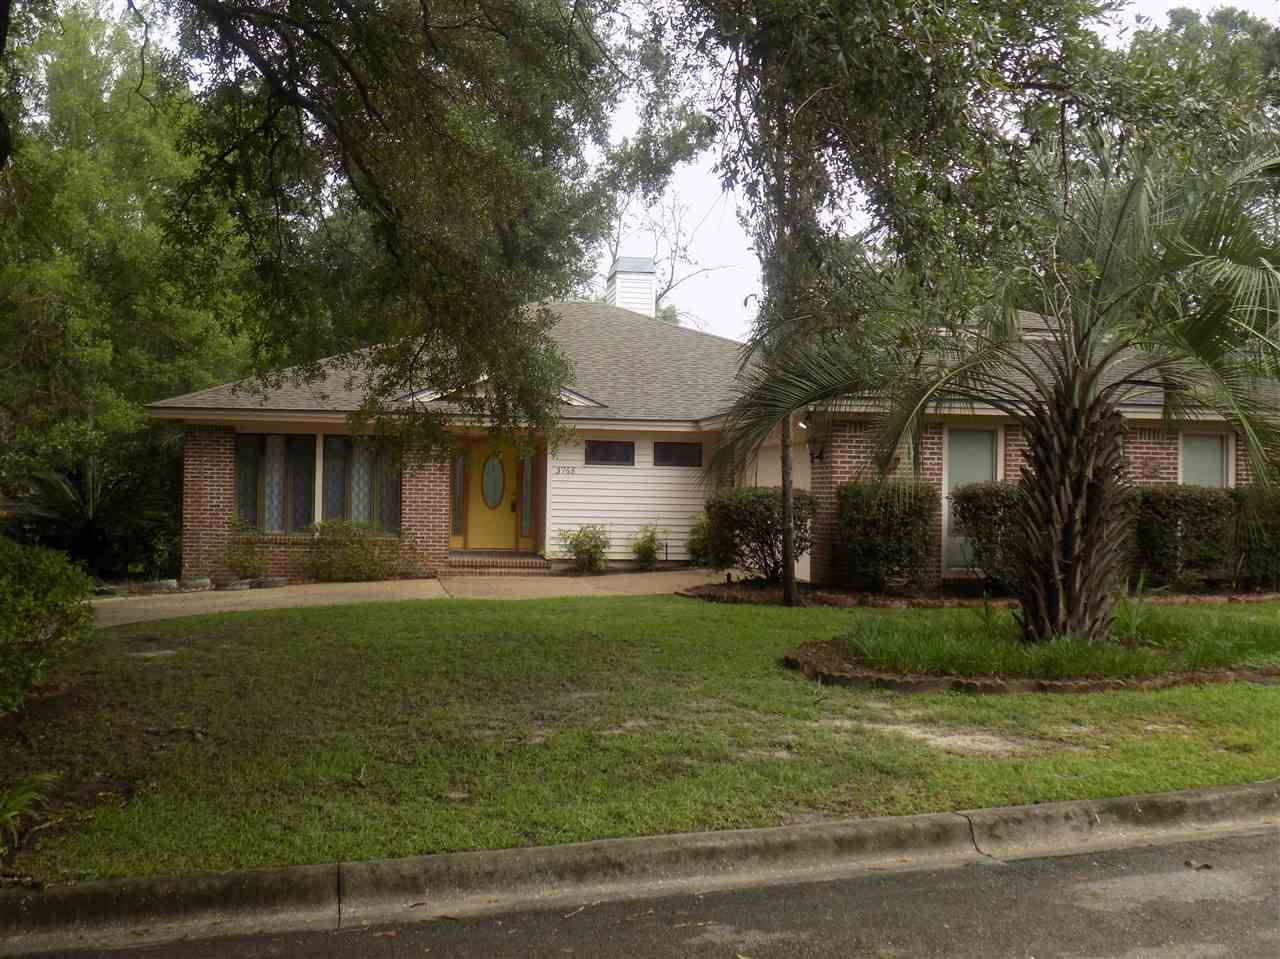 3768 Longchamp Circle, Tallahassee, FL 32309 - MLS#: 323685